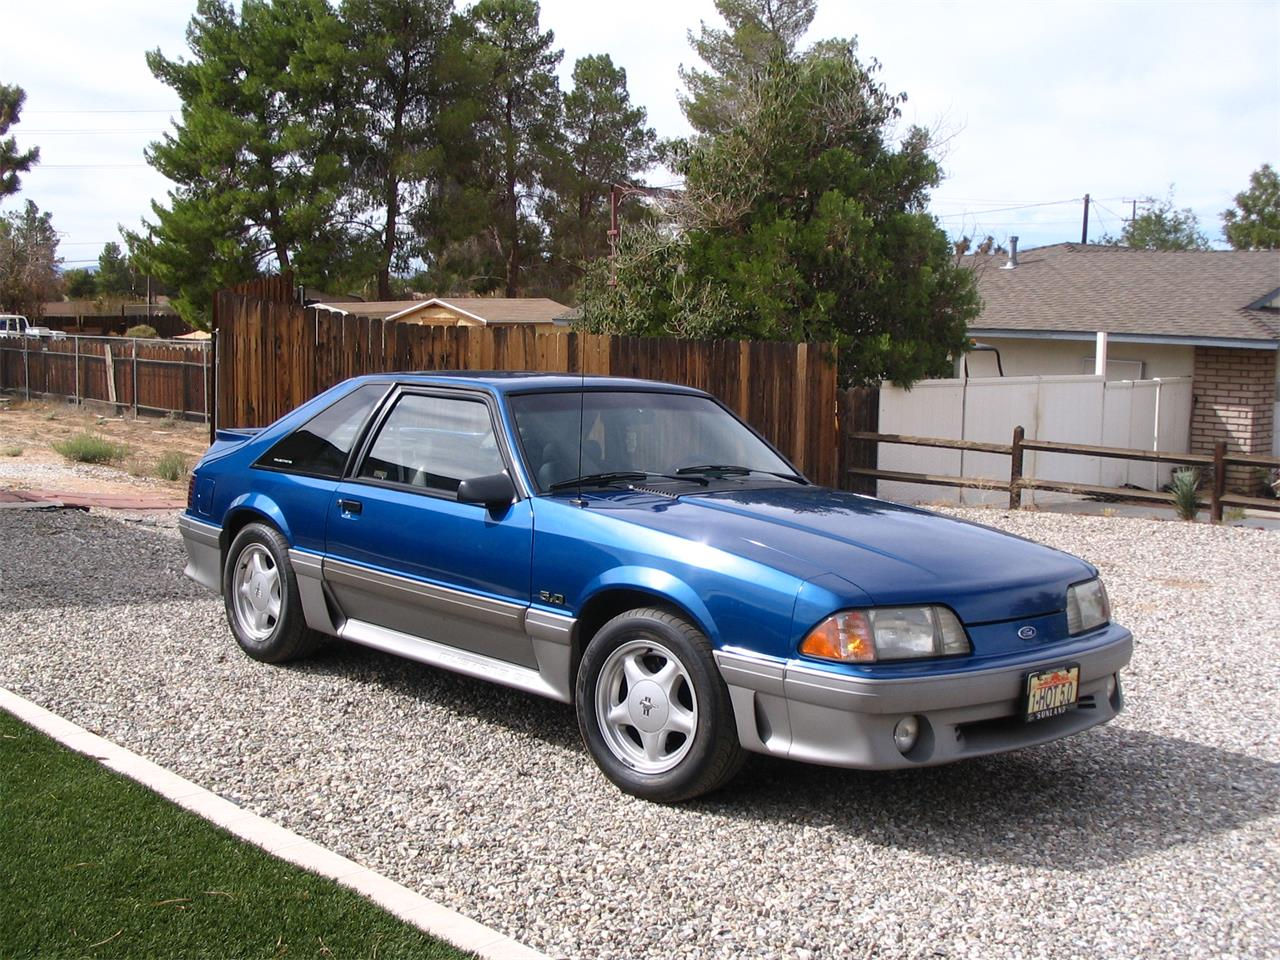 91 Mustang Gt >> 1991 Ford Mustang Gt For Sale Classiccars Com Cc 1193962